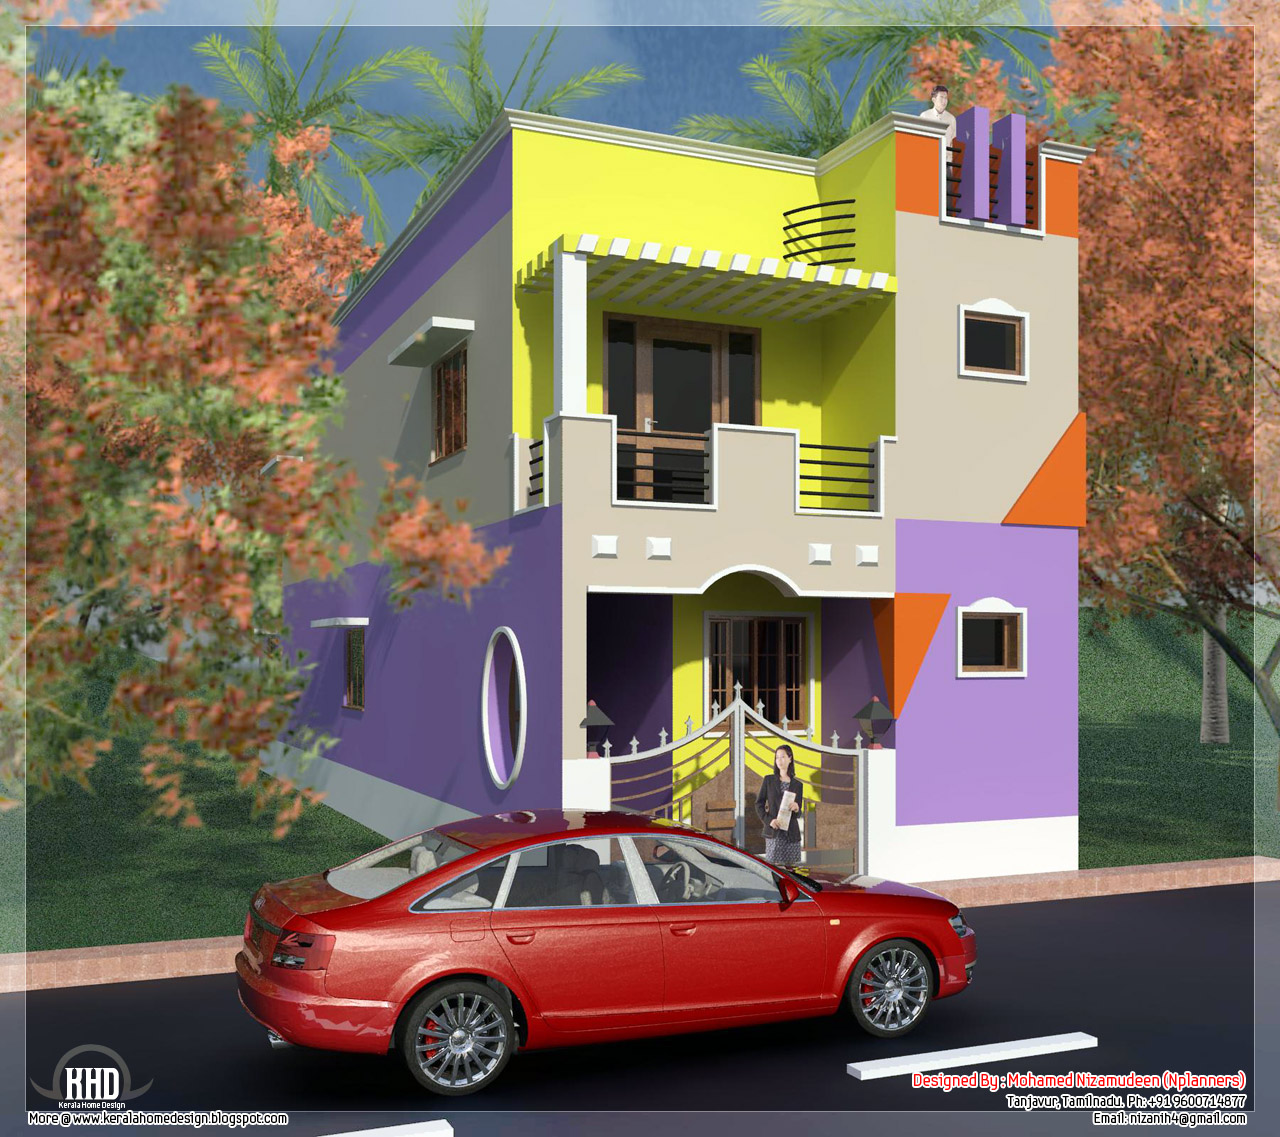 House models in tamil nadu joy studio design gallery for Tamilnadu house models